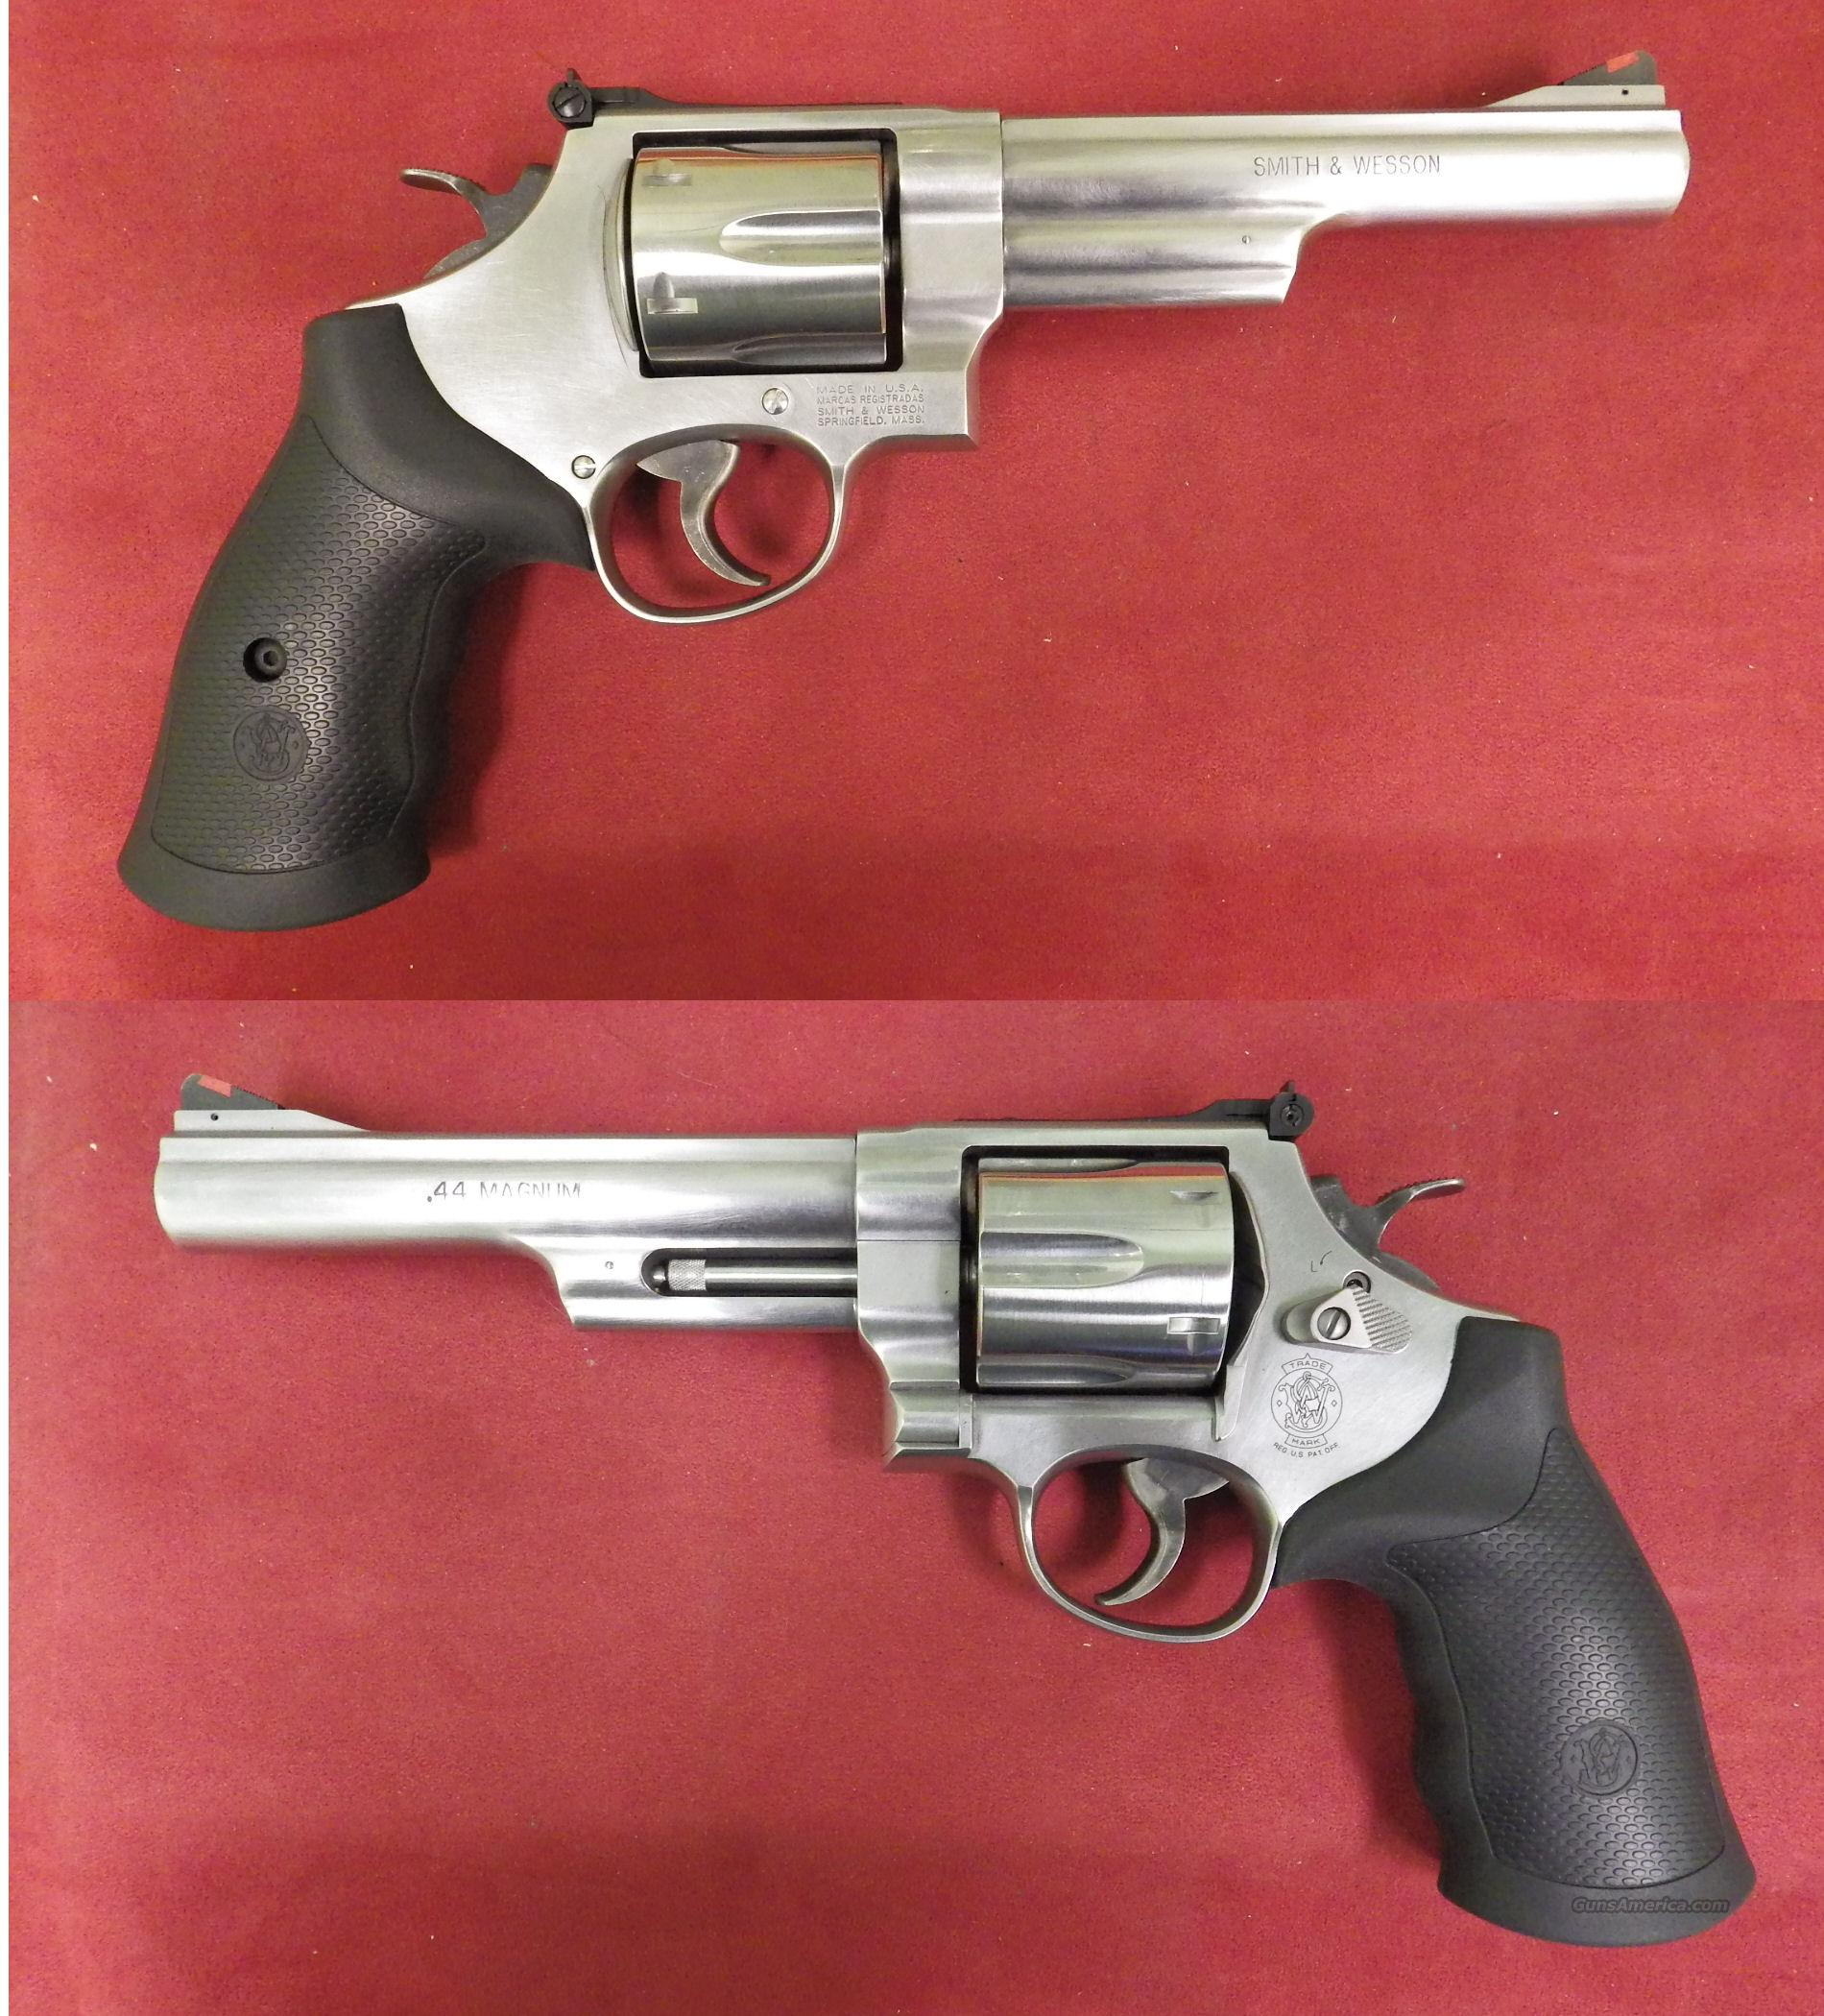 Smith & Wesson 629 .44 Magnum *MUST CALL*  Guns > Pistols > Smith & Wesson Revolvers > Model 629